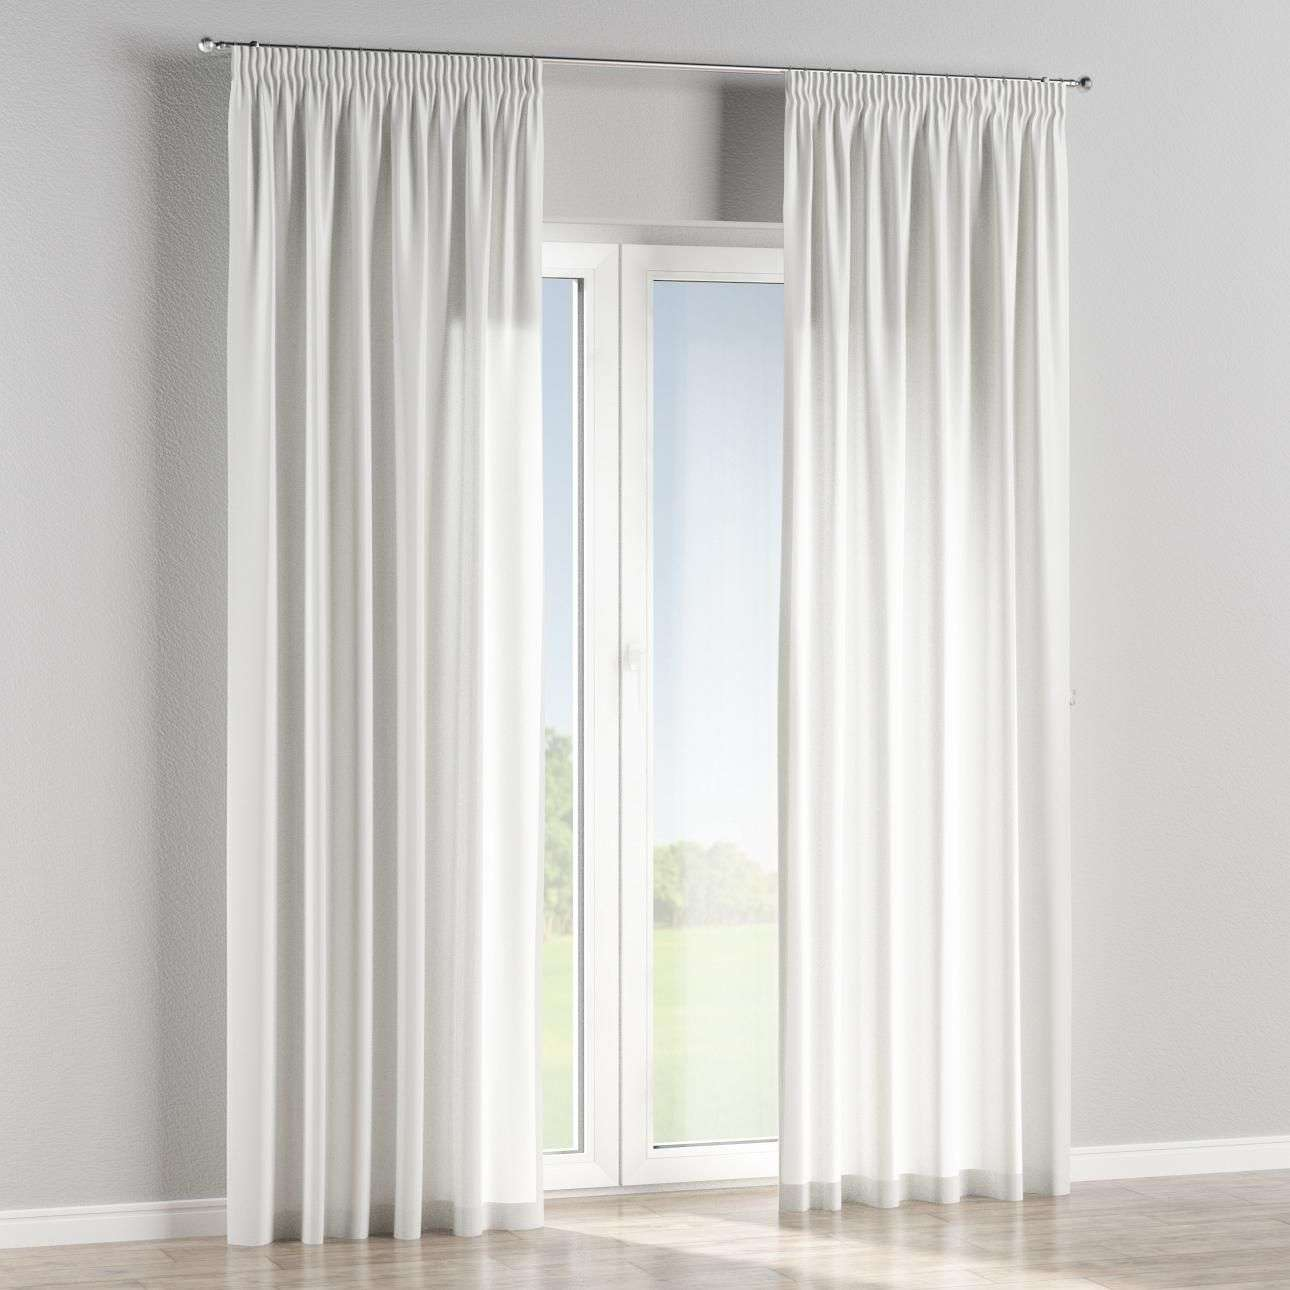 Pencil pleat lined curtains in collection Cardiff, fabric: 136-21